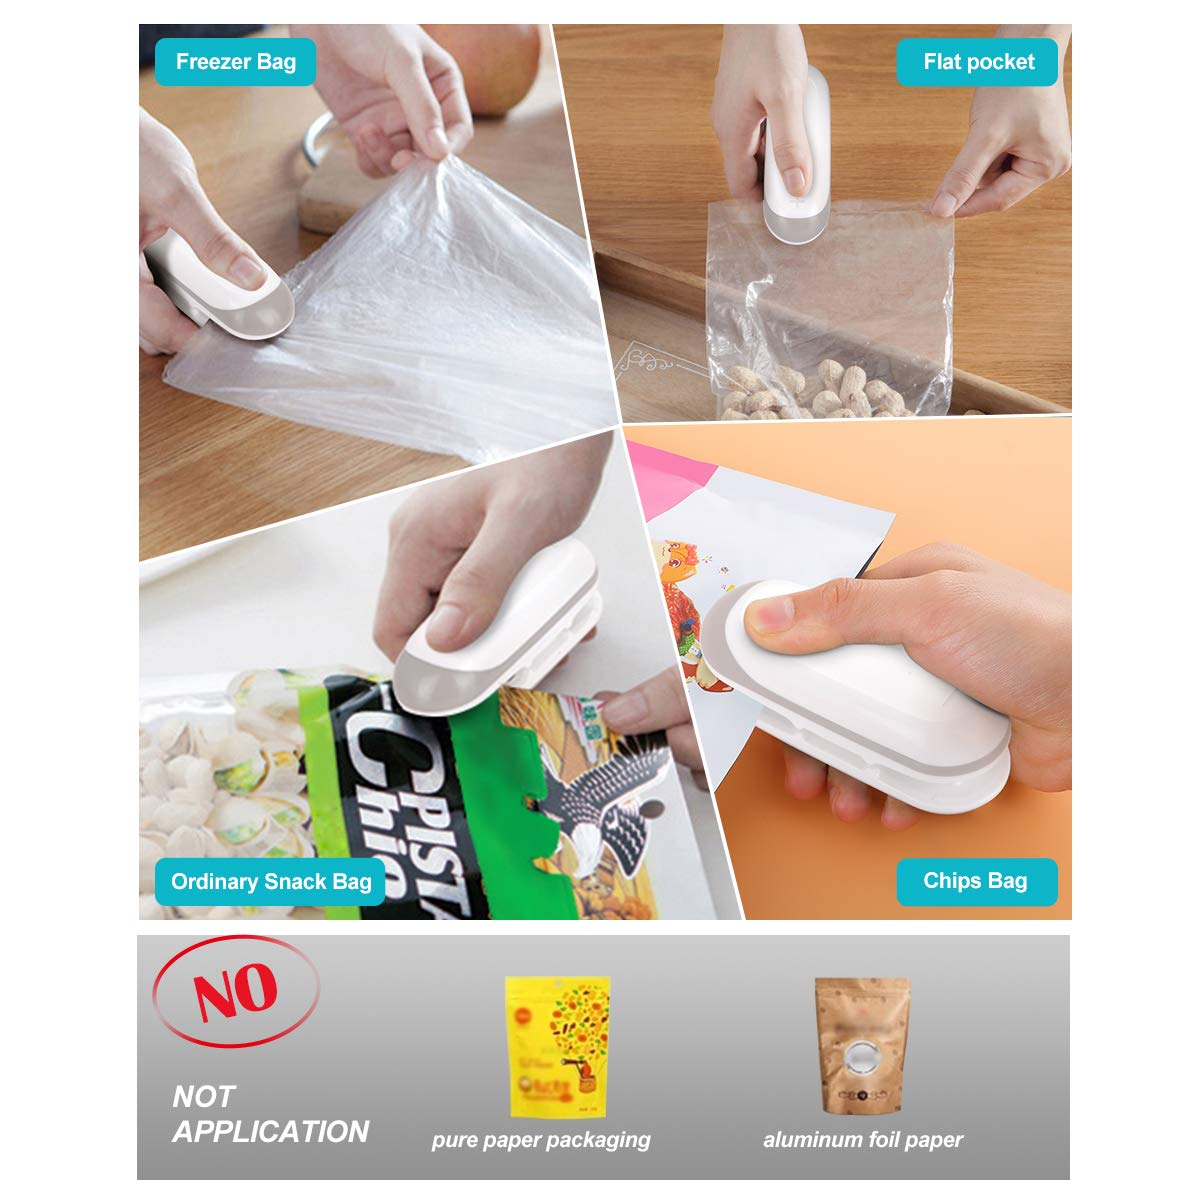 Mini Bag Sealer, 2 in 1 Heat Sealer and Cutter with Detachable Hook Handhold Heat Sealer for Food Storage Resealing Snack Bags (Battery Not Included)